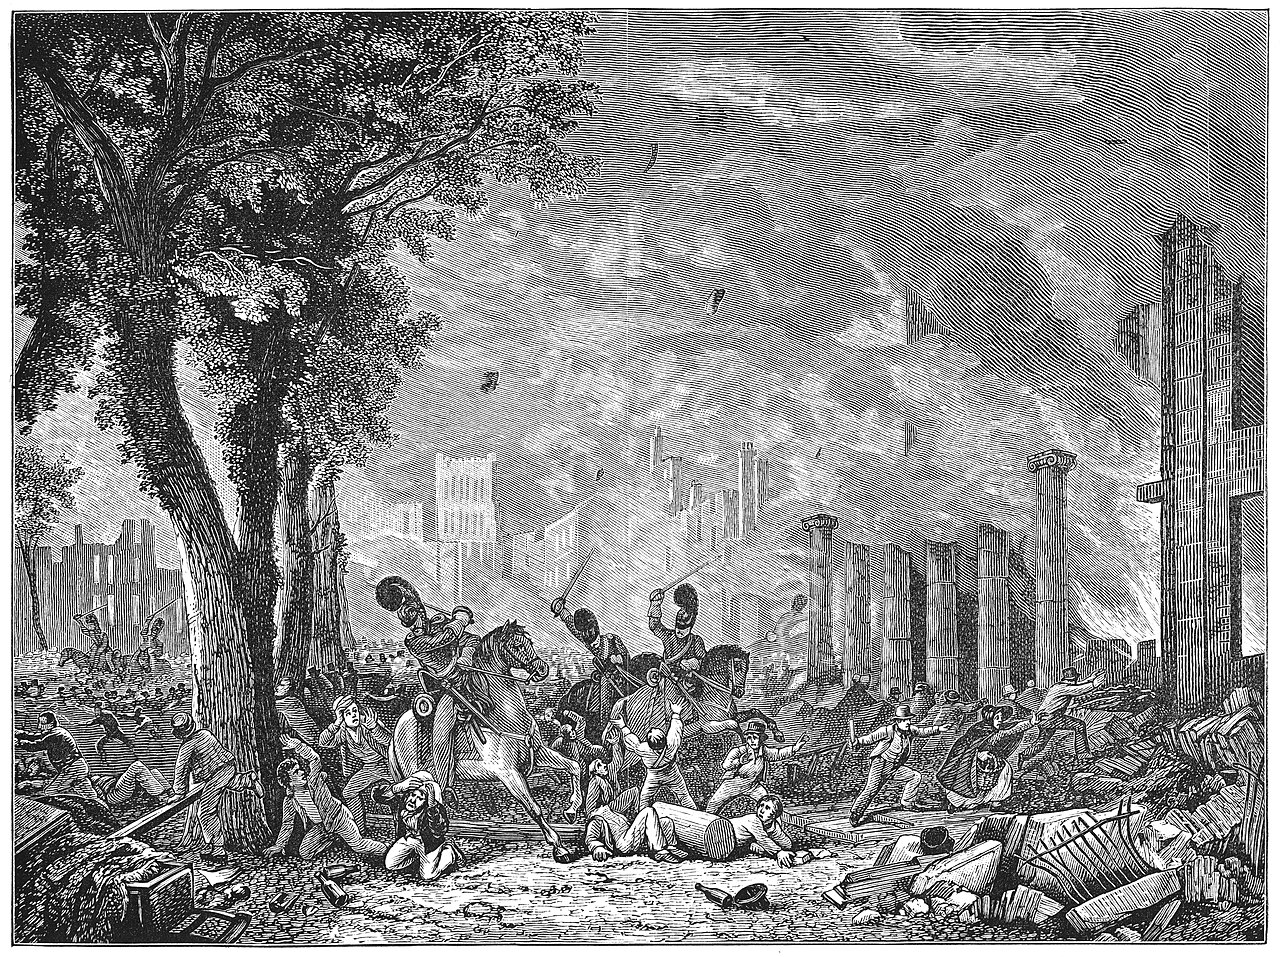 File:Queen Square Riot 1831 engraving.jpg